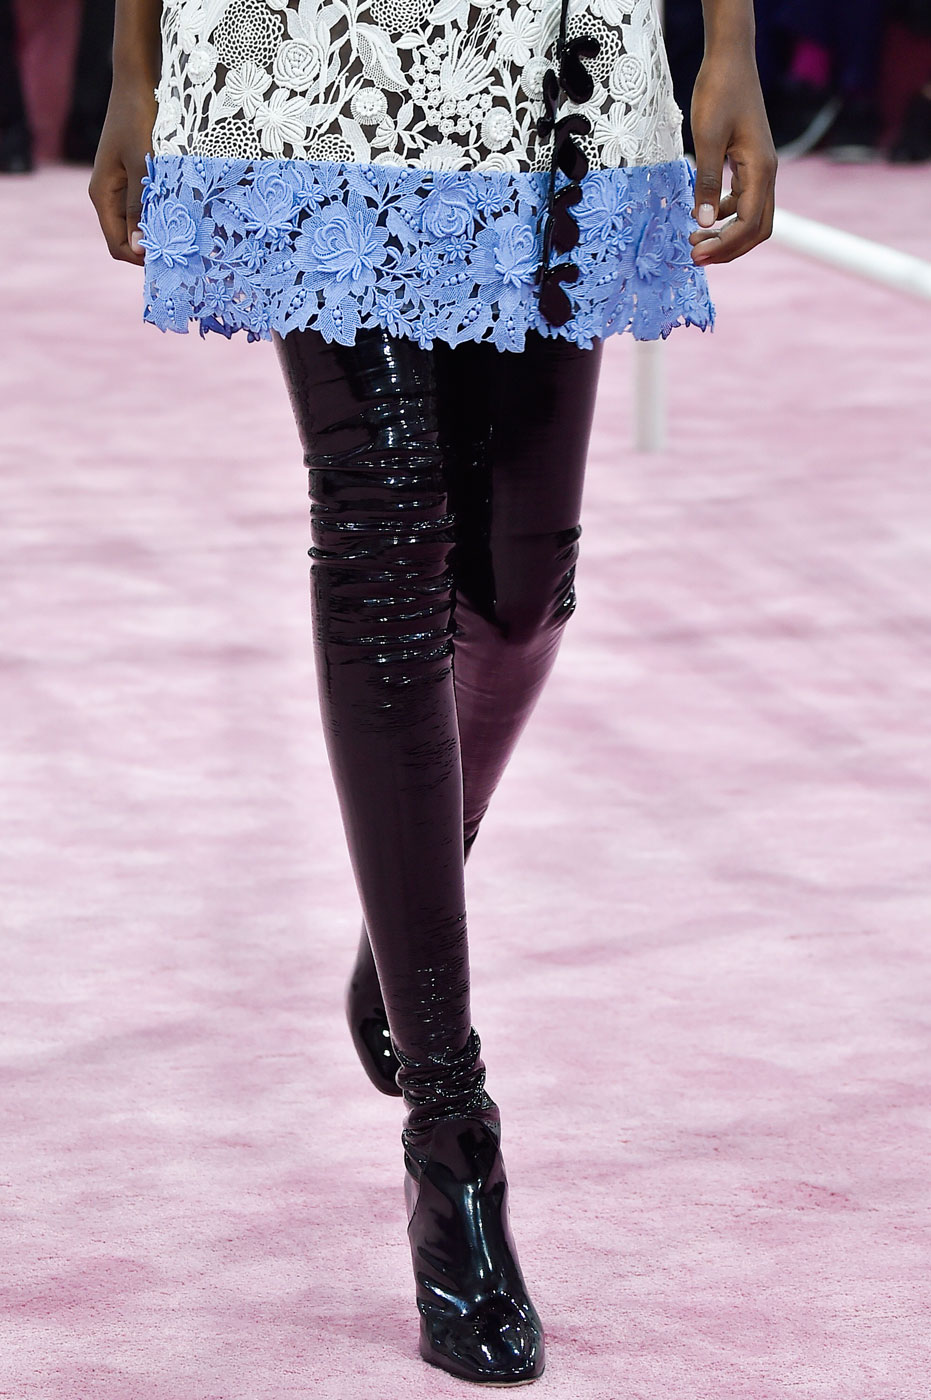 Christian-Dior-fashion-runway-show-close-ups-haute-couture-paris-spring-summer-2015-the-impression-091